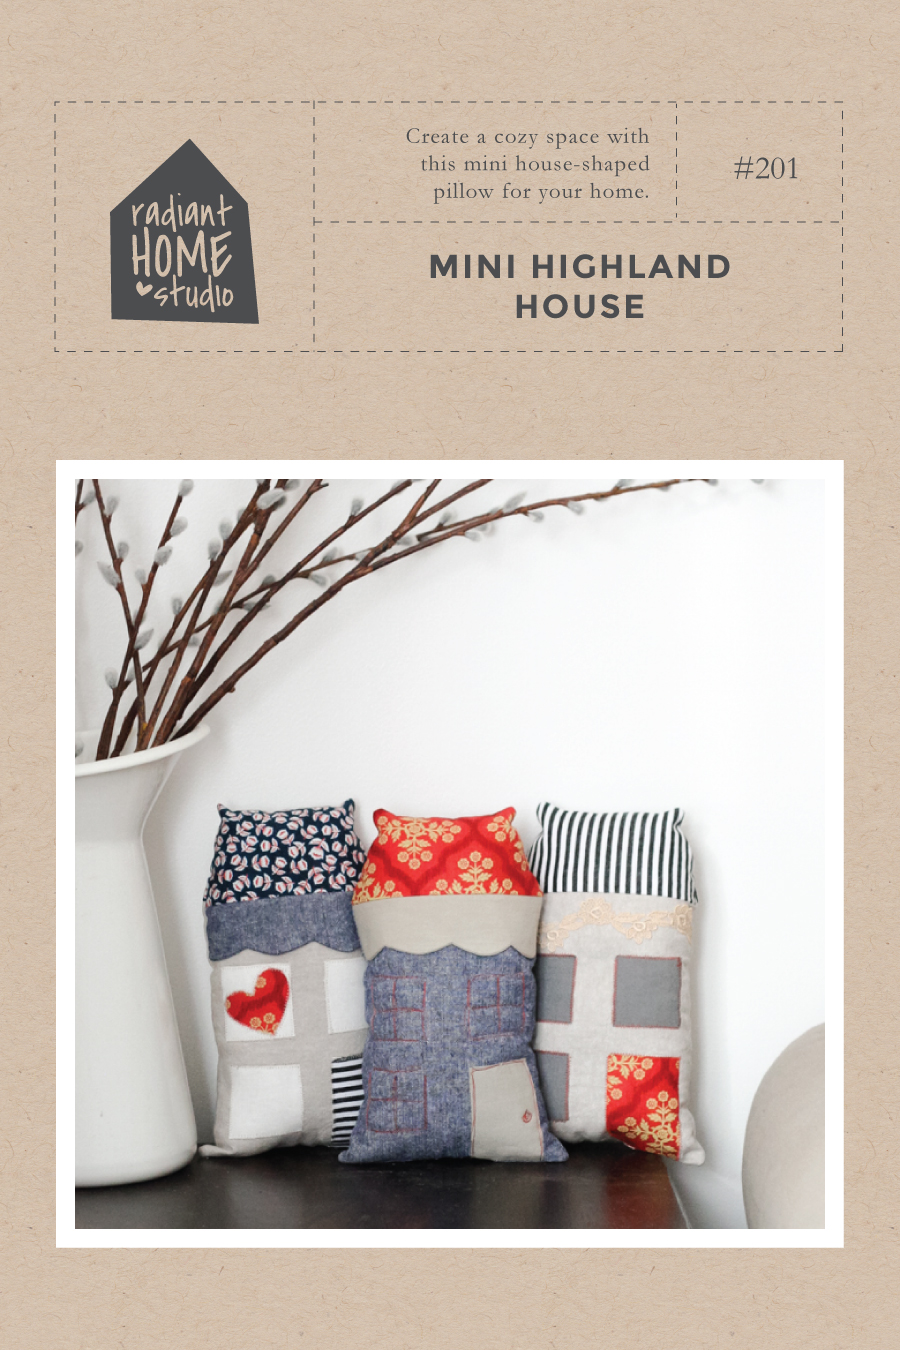 Mini Highland House Sewing pattern | Radiant Home Studio